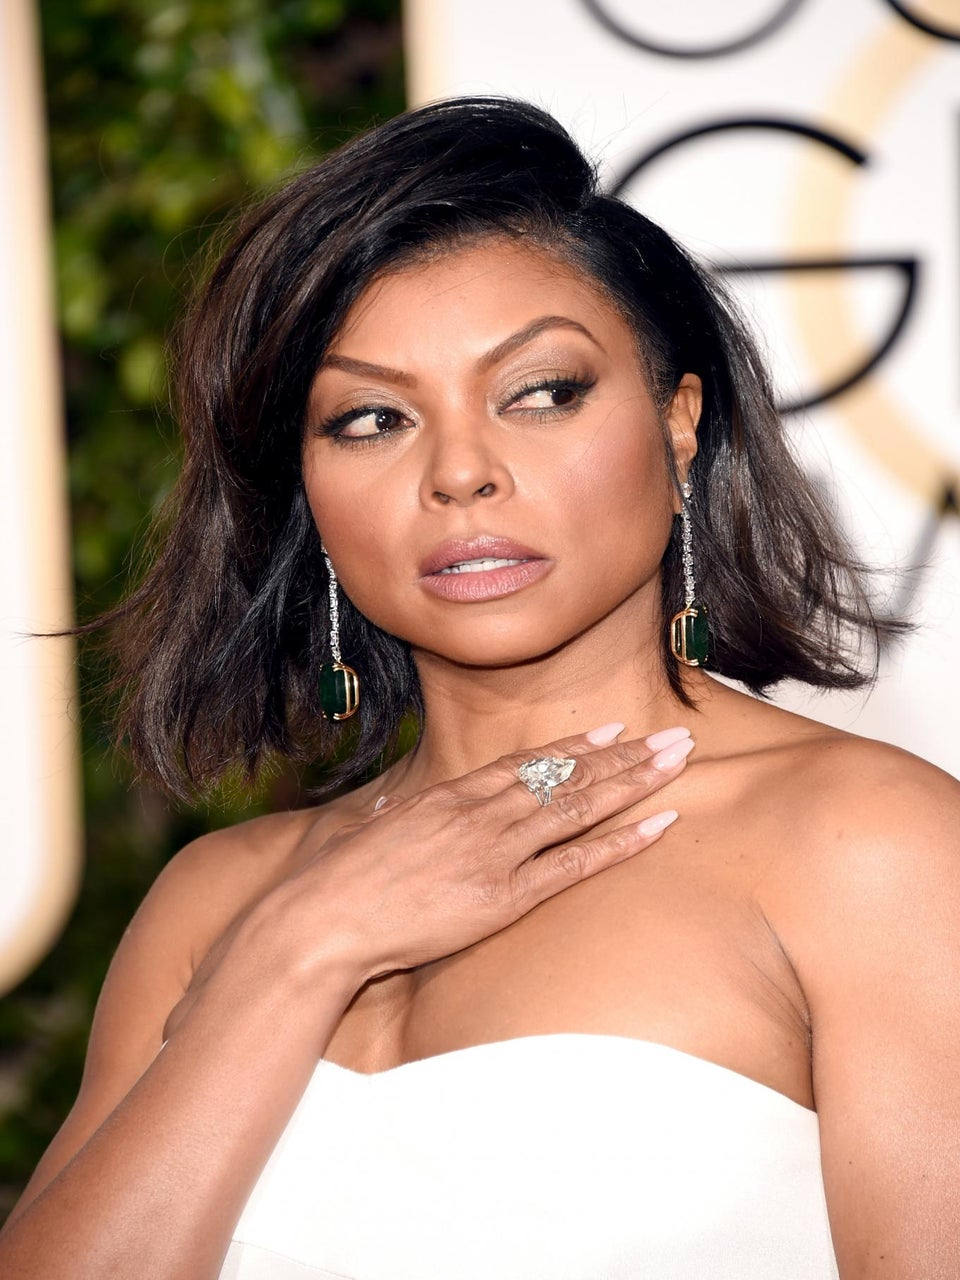 Taraji P. Henson Claps Back At Instagram Follower Who Calls Her a 'Black Racist'